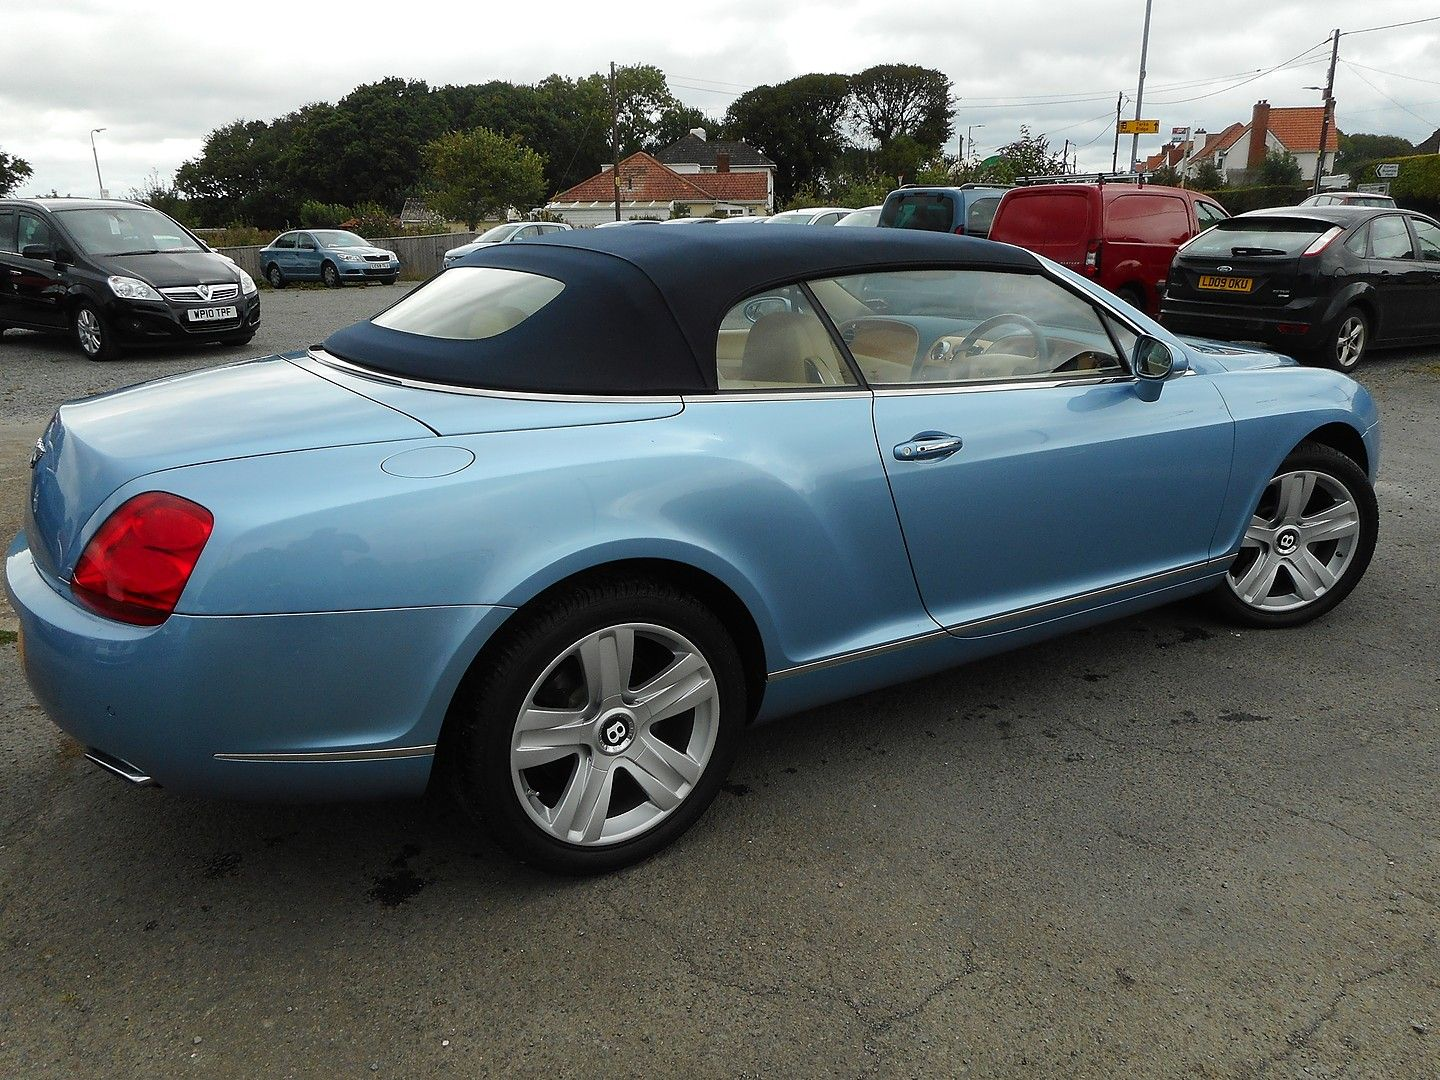 BENTLEY Continental GTC (2007) - Picture 4